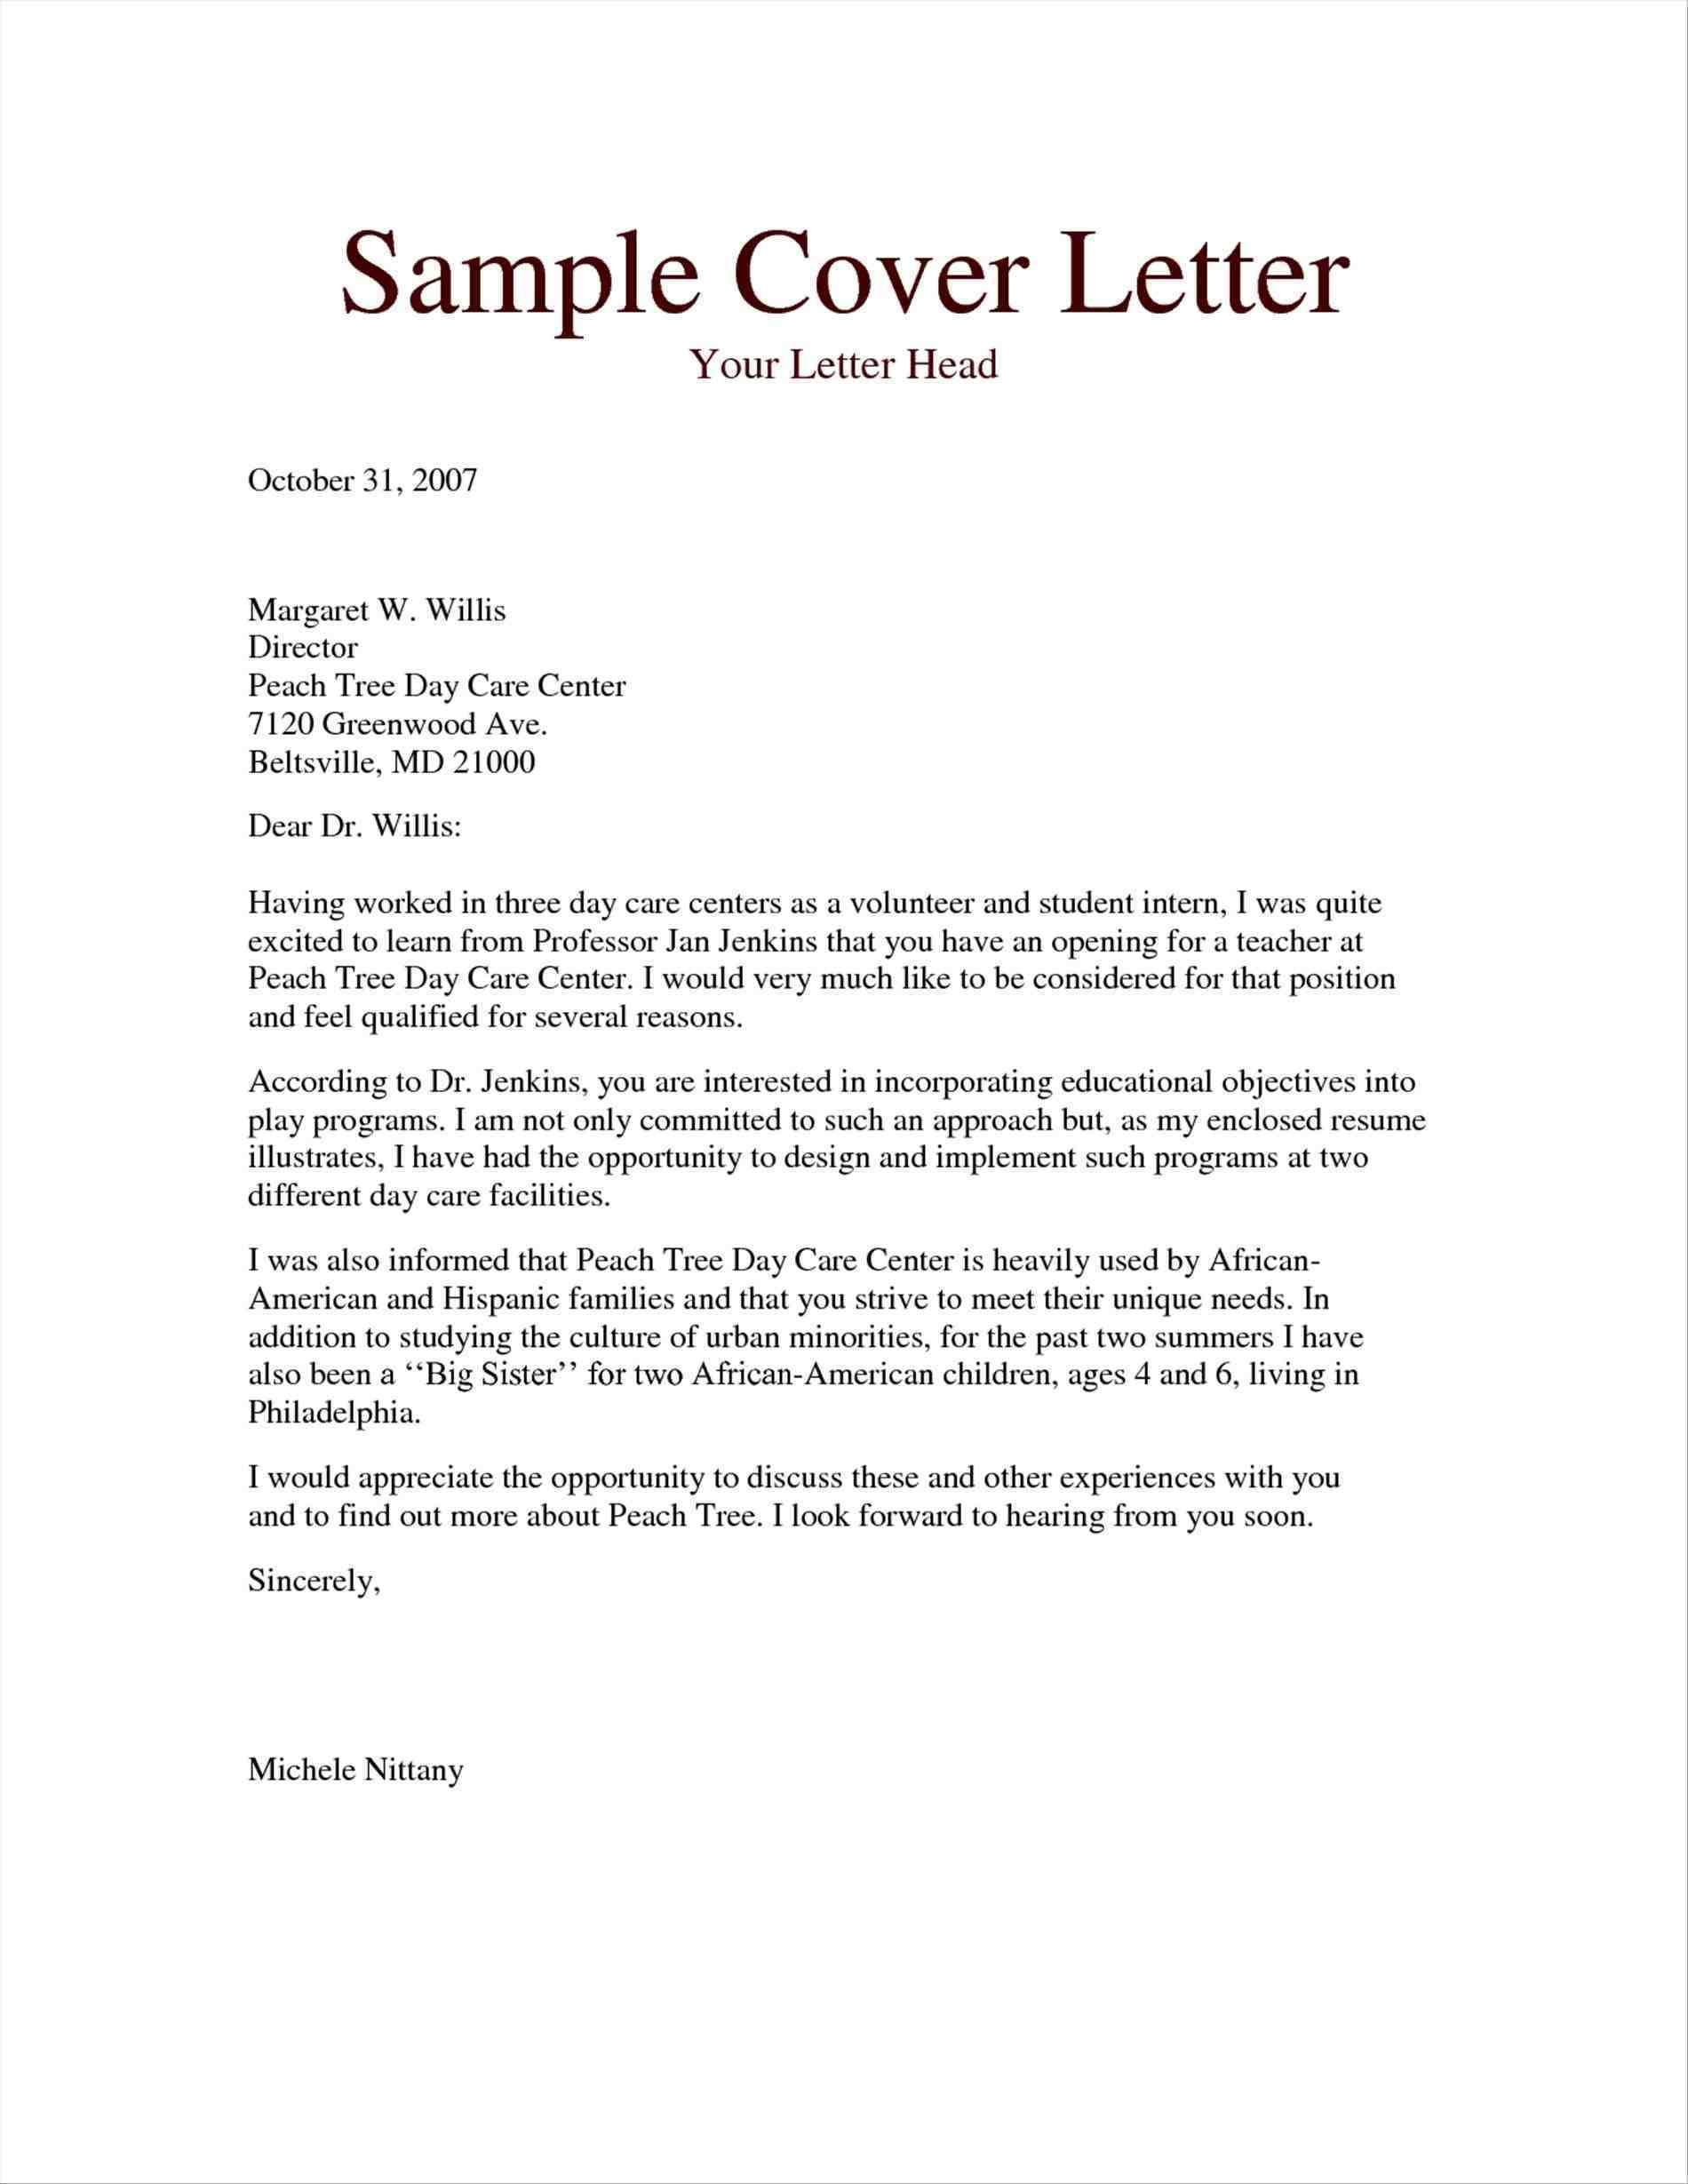 Cover Letter Template for Teachers Aide - Letter astonishing Sample Cover Letters for Teachers with No